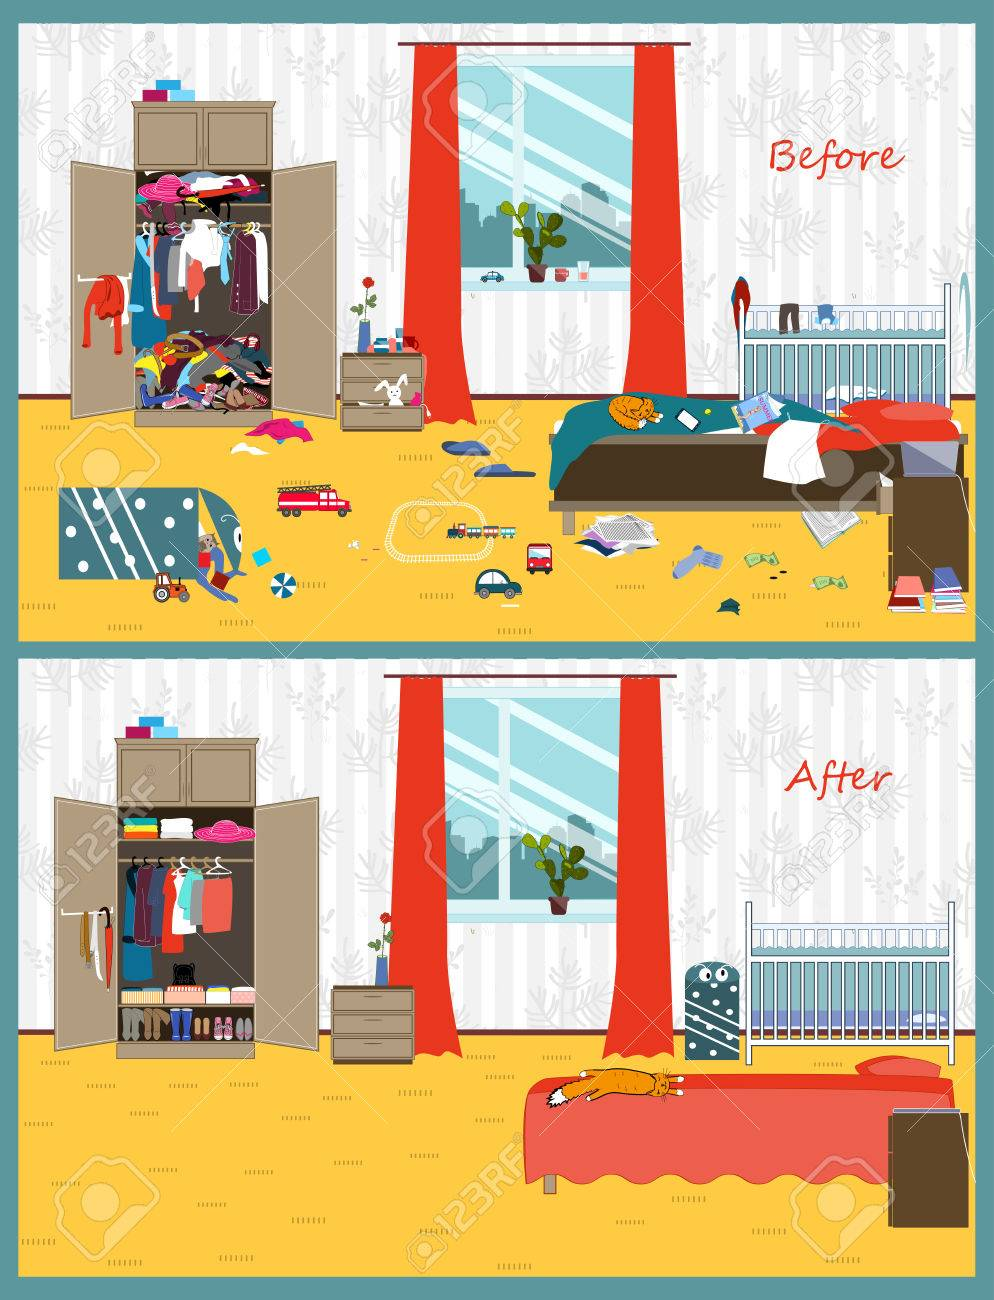 Dirty and clean room. Disorder in the interior. Room before and after cleaning. Flat style vector illustration. - 86140393